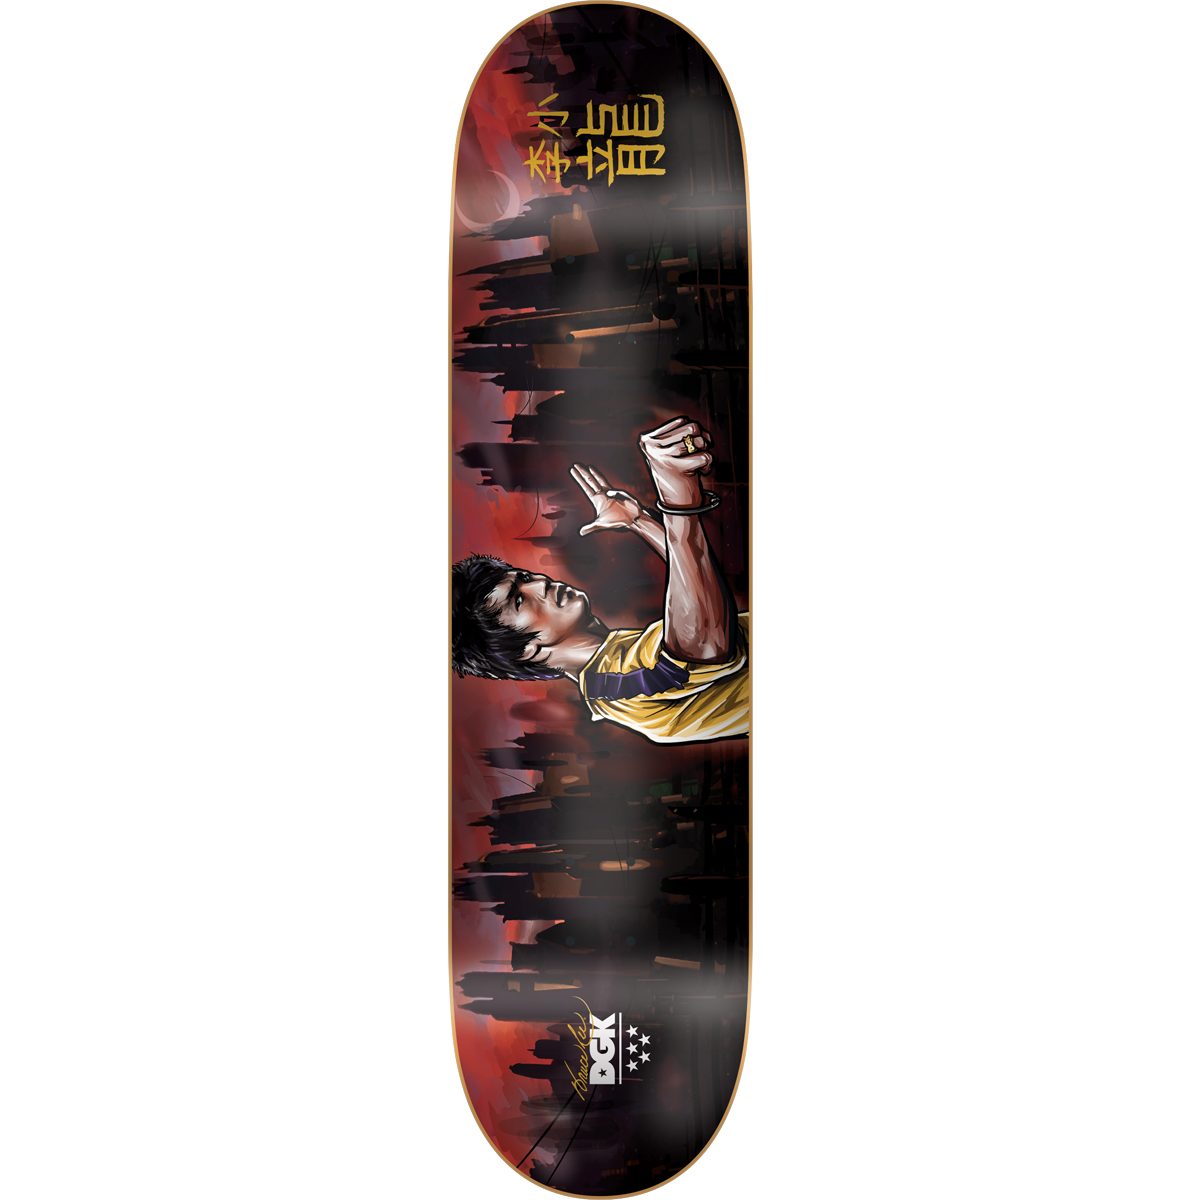 Warrior DGK Skate Deck